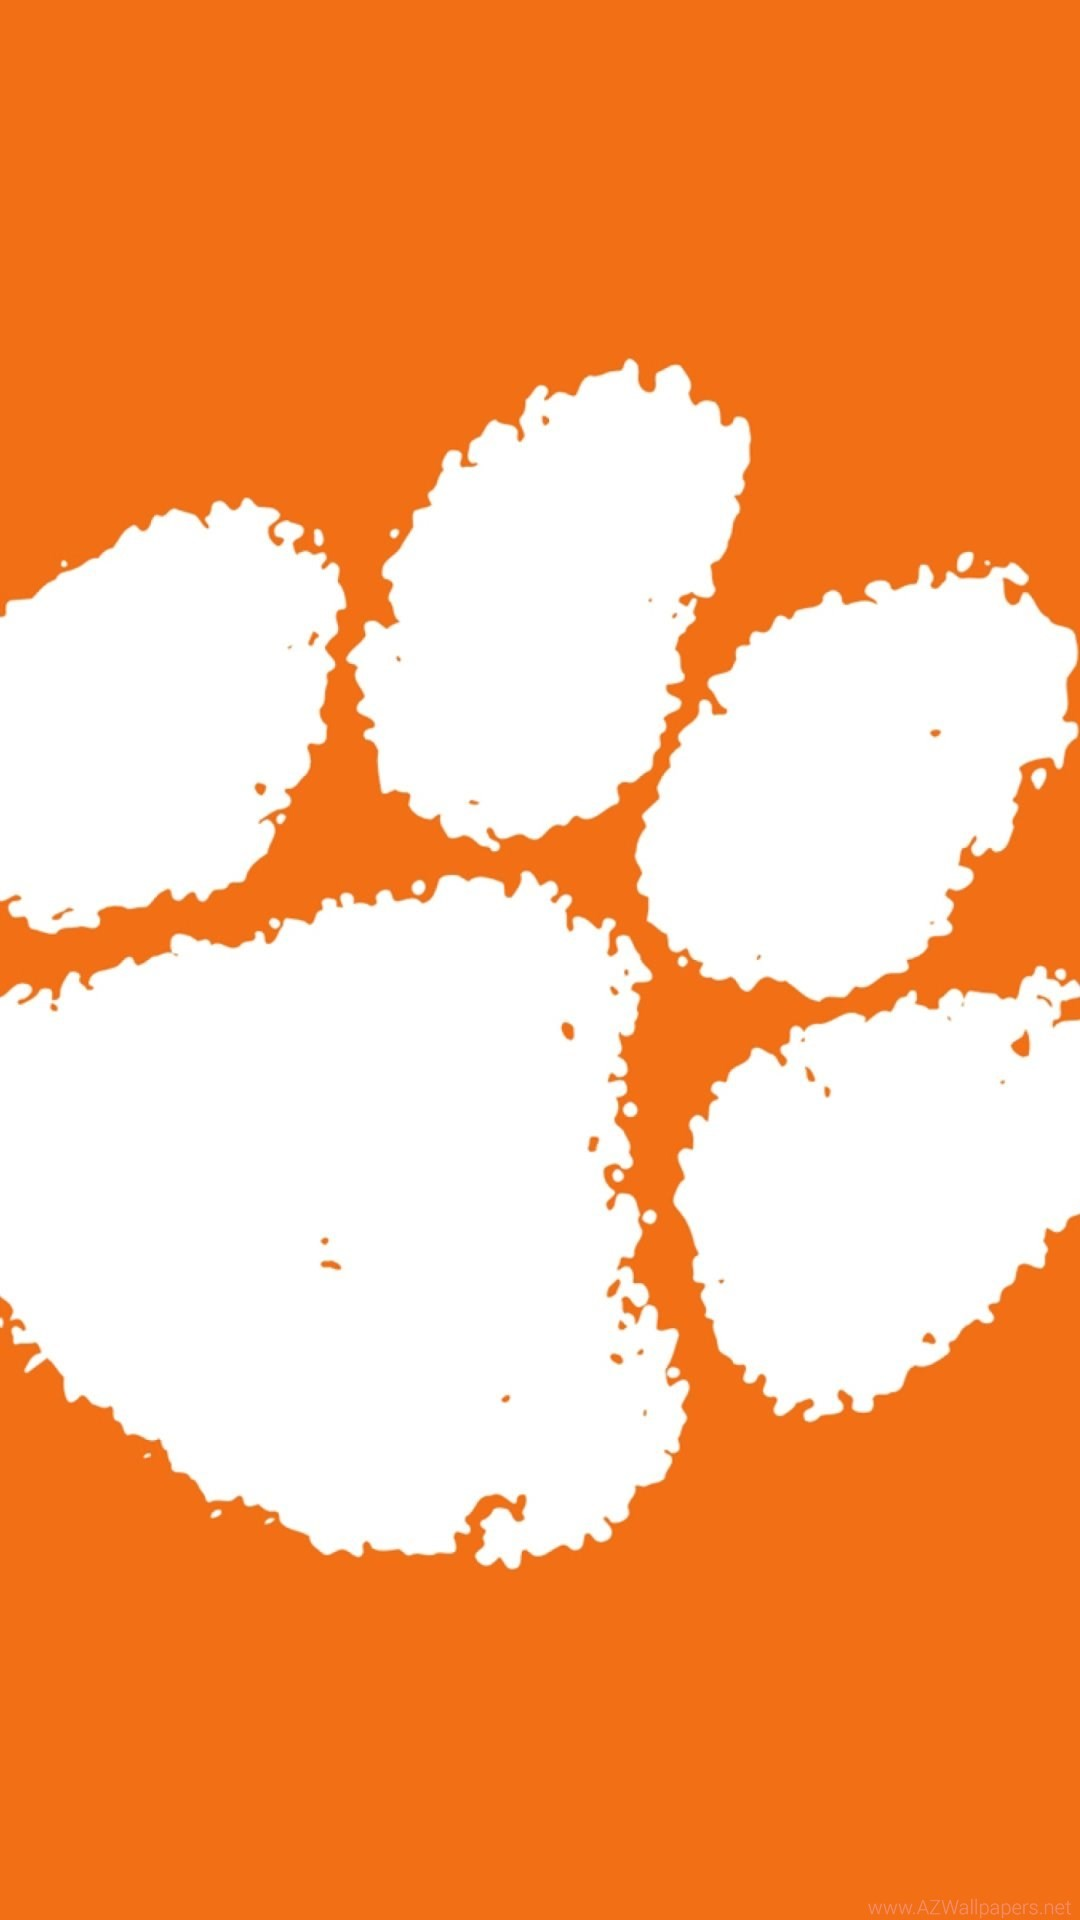 Clemson Tigers Wallpapers For iPhone 6 Plus